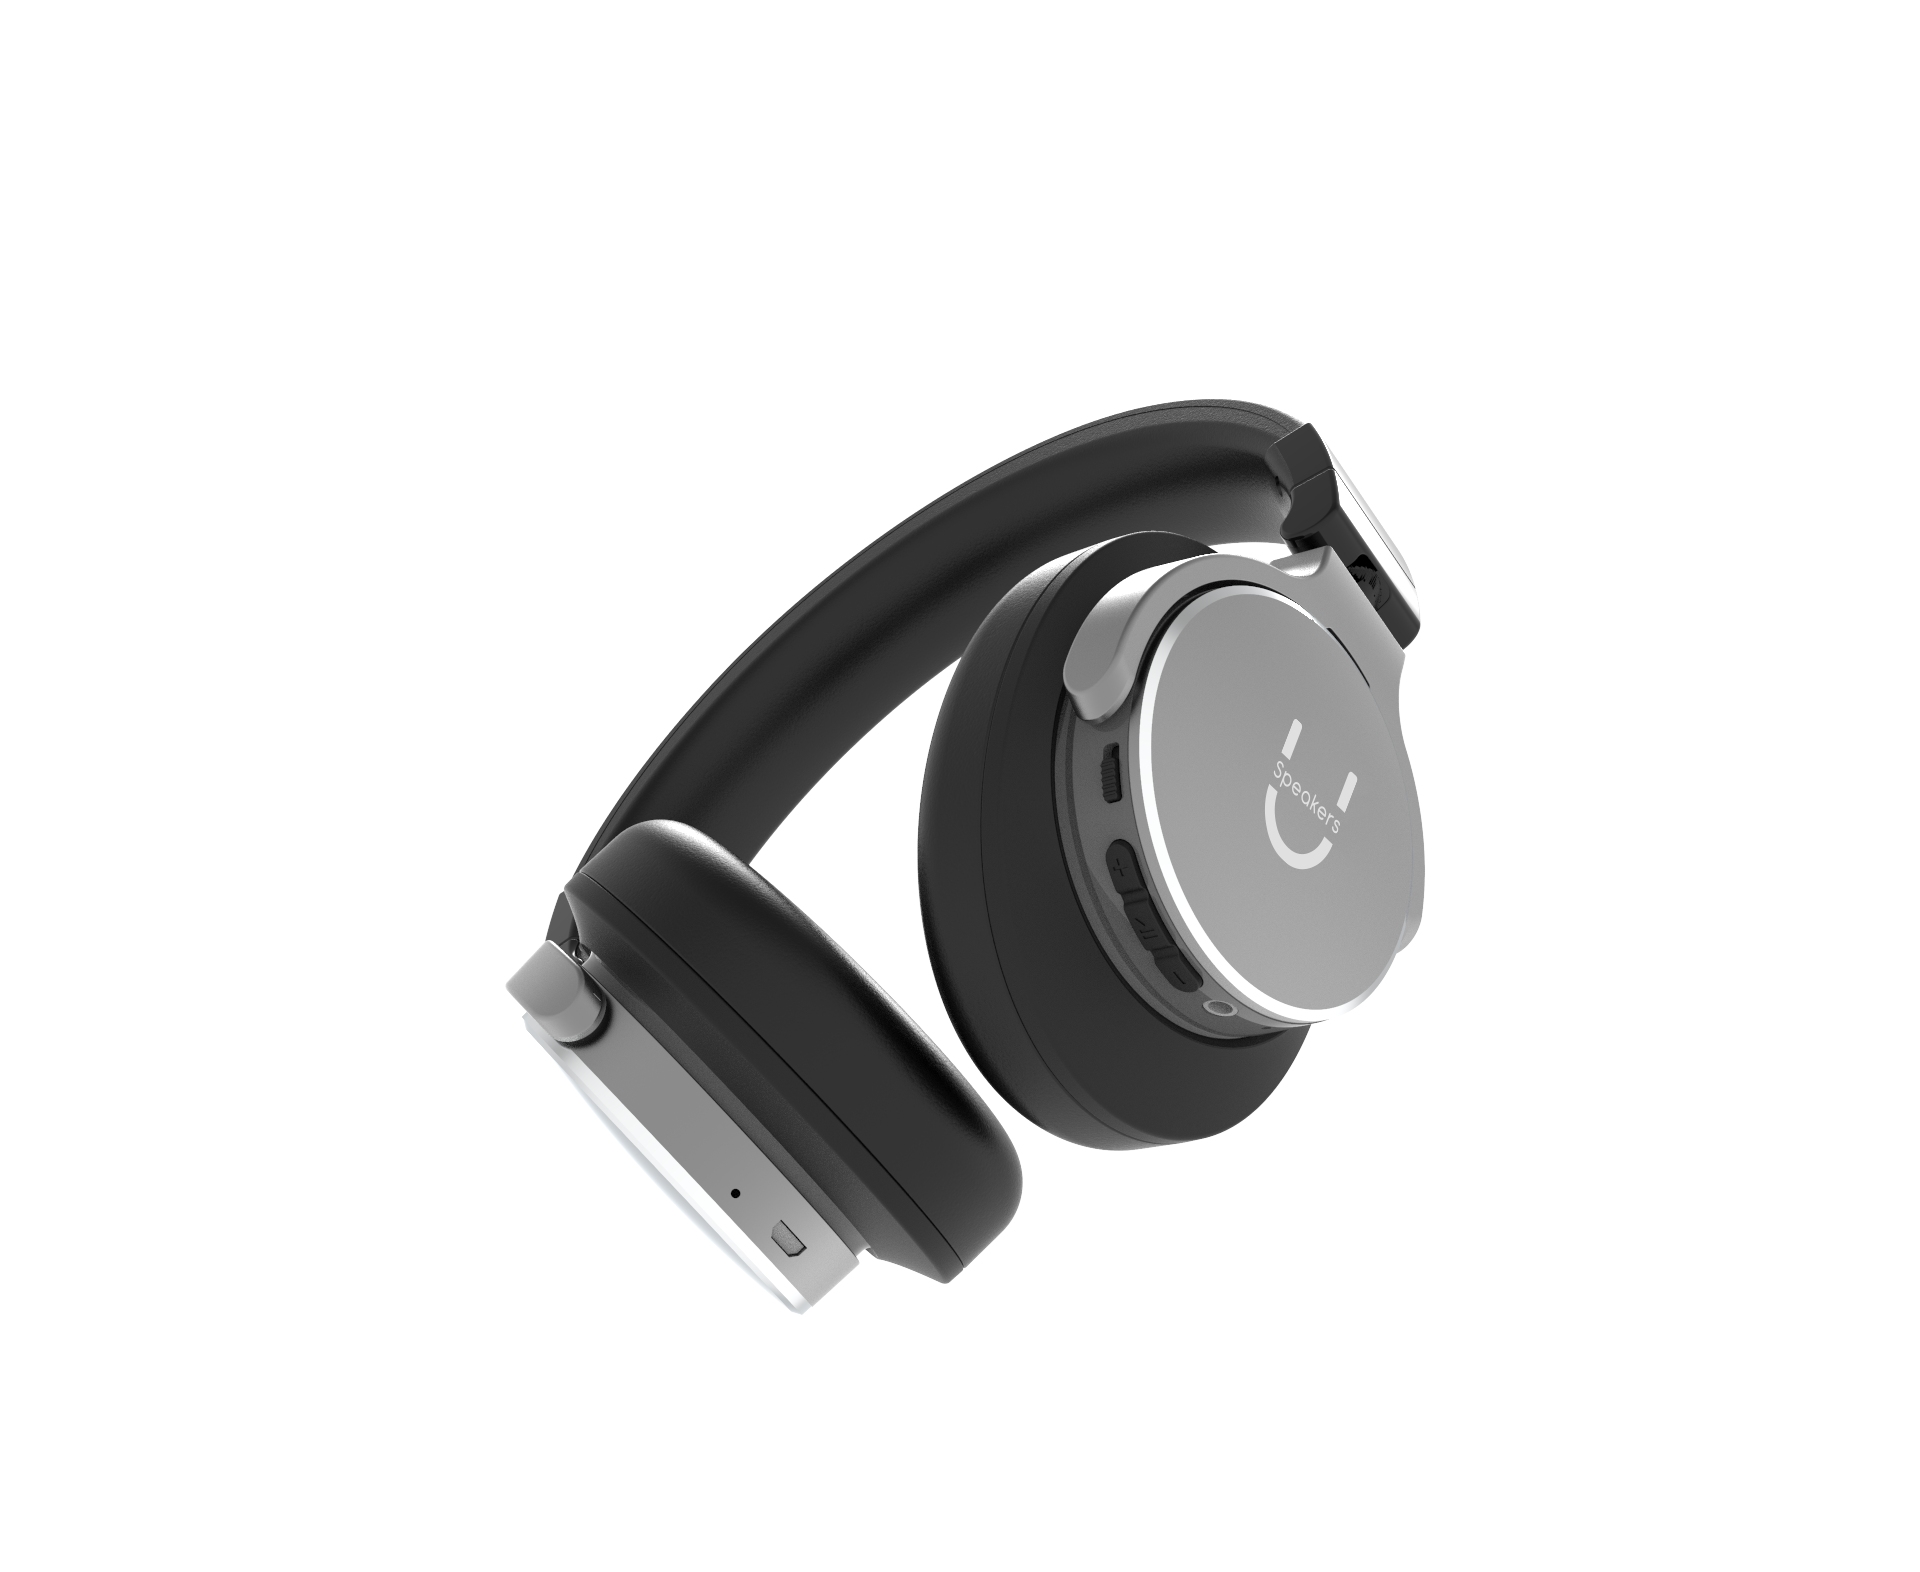 U Evolve Headphones with ANC - Space Grey|Tech - Fashionit USpeakers